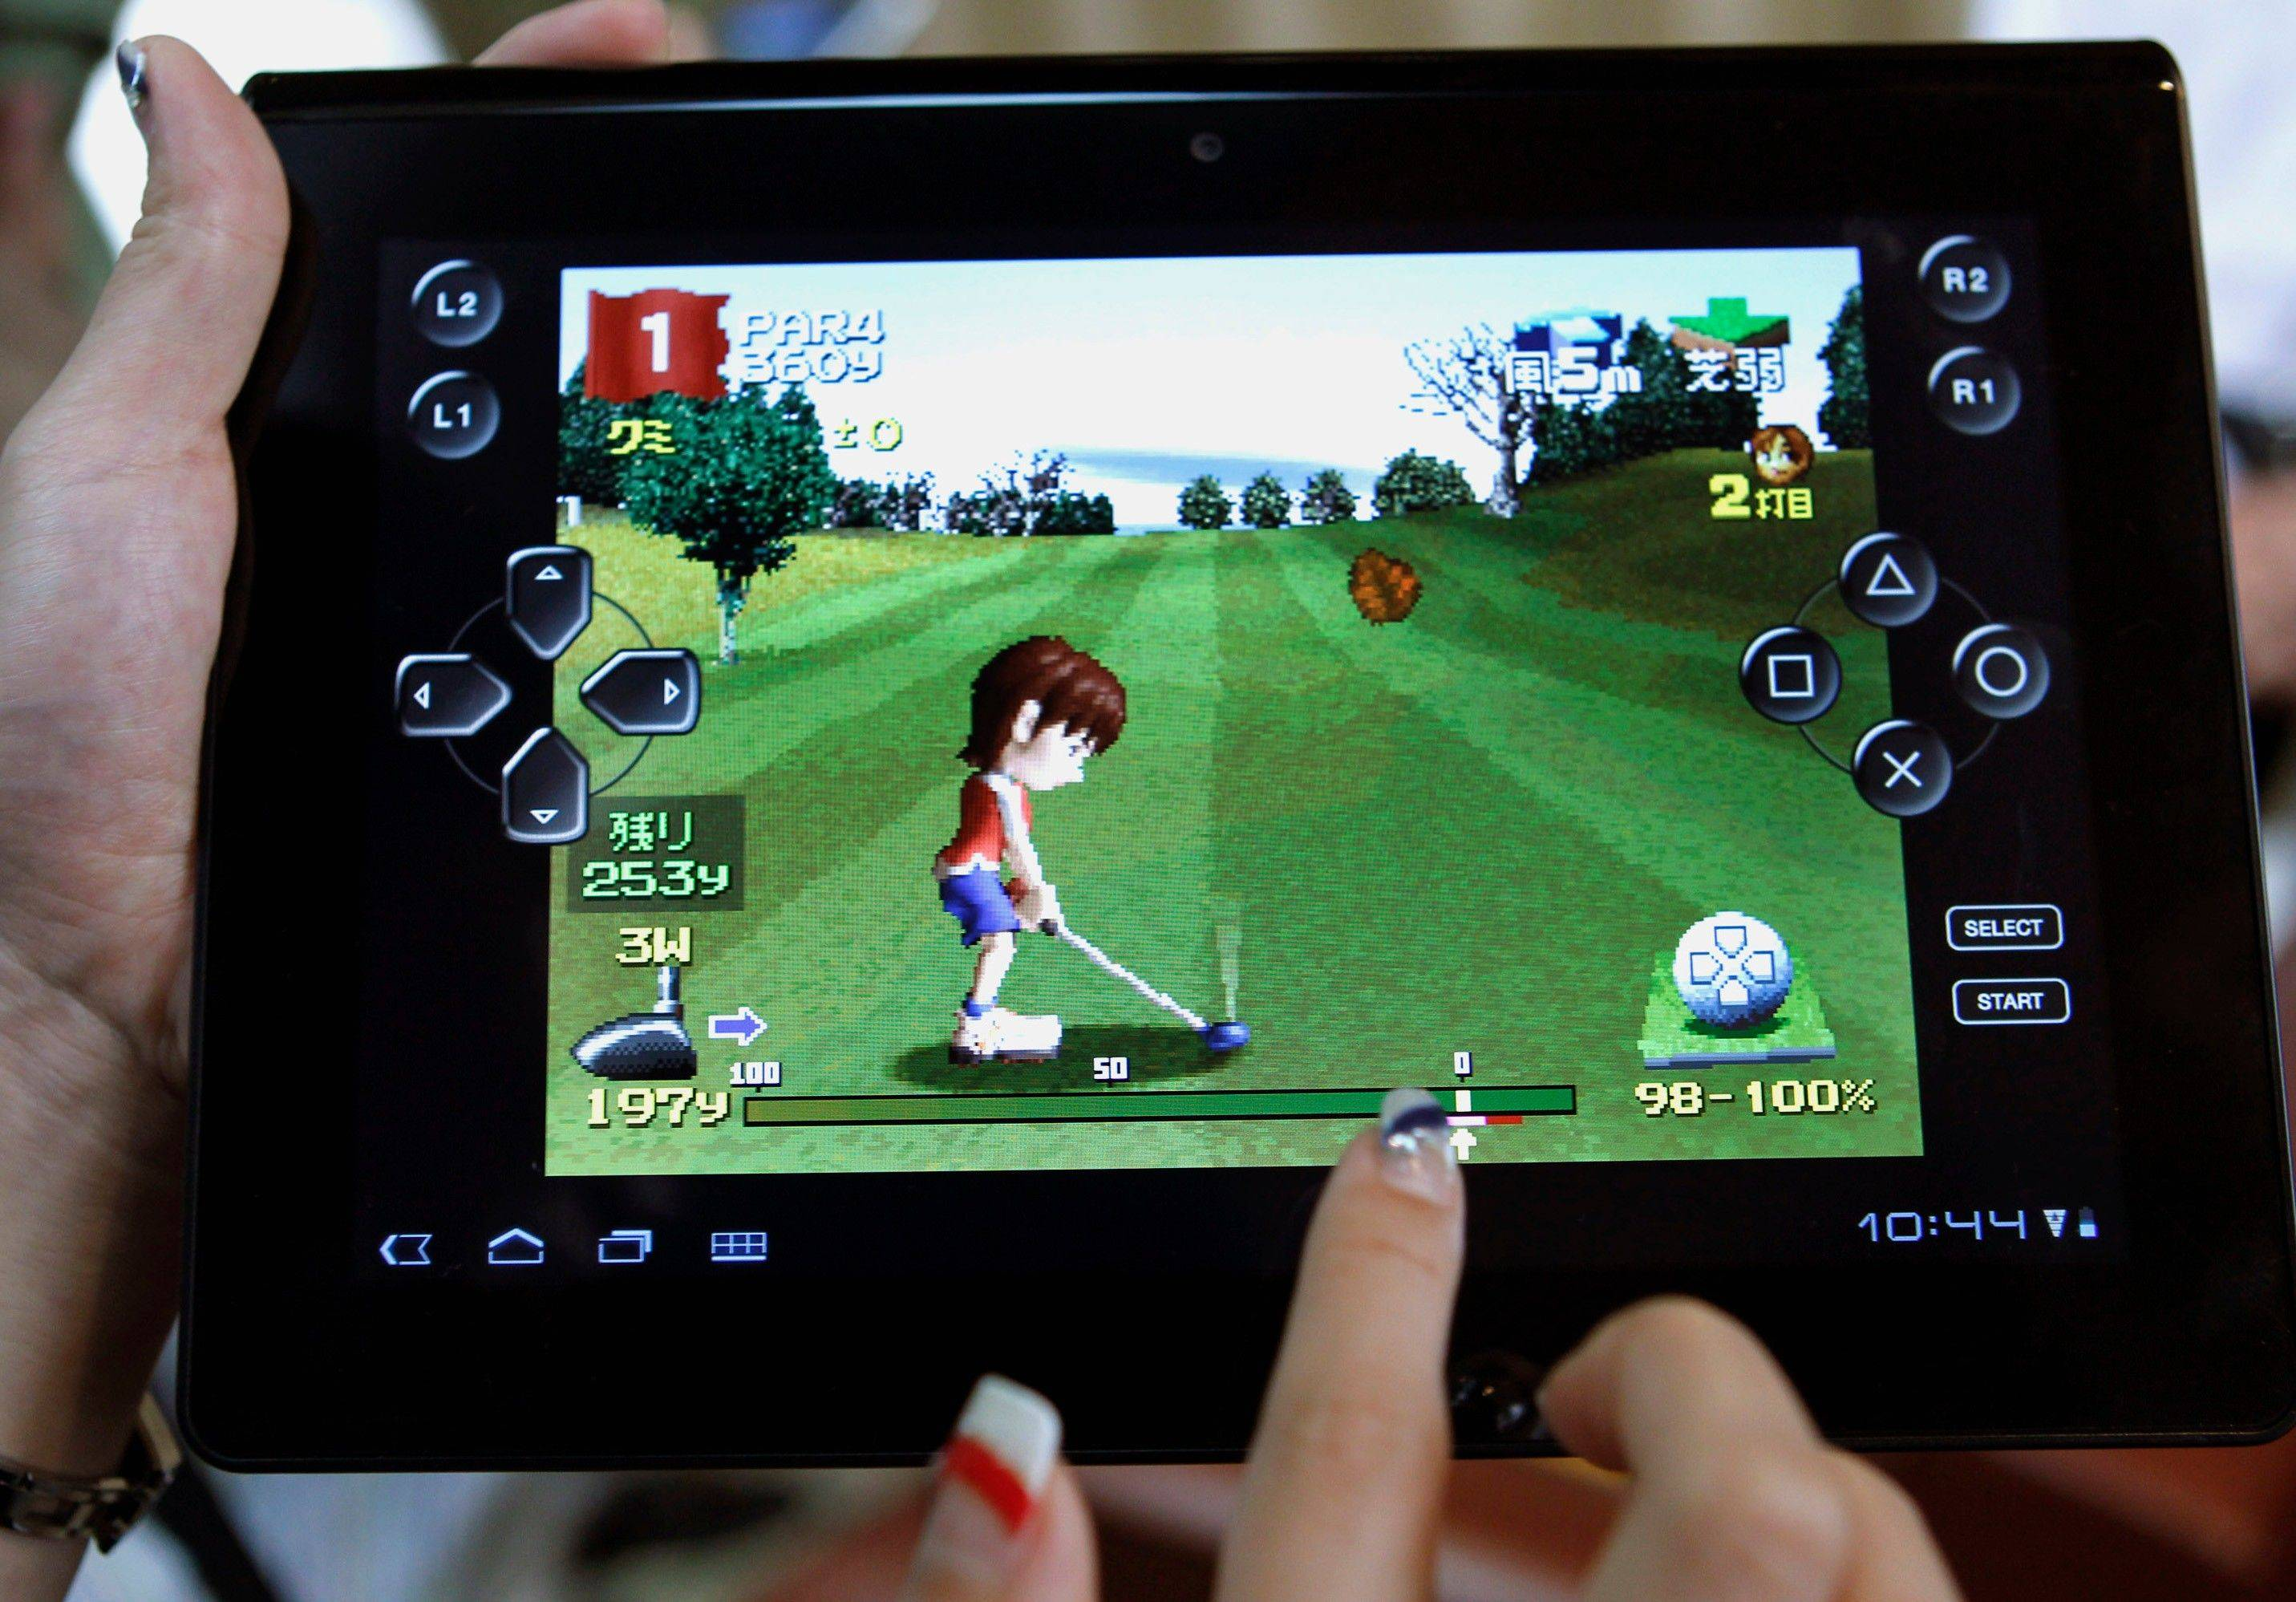 A models plays a game on Sony's new tablet computer Tablet S during a launch event in Tokyo, Thursday. The wedge-shaped Tablet S, about the size of an iPad, can double as a universal remote control. Sony said the Tablet S is going on sale on Sept. 17 in Japan.